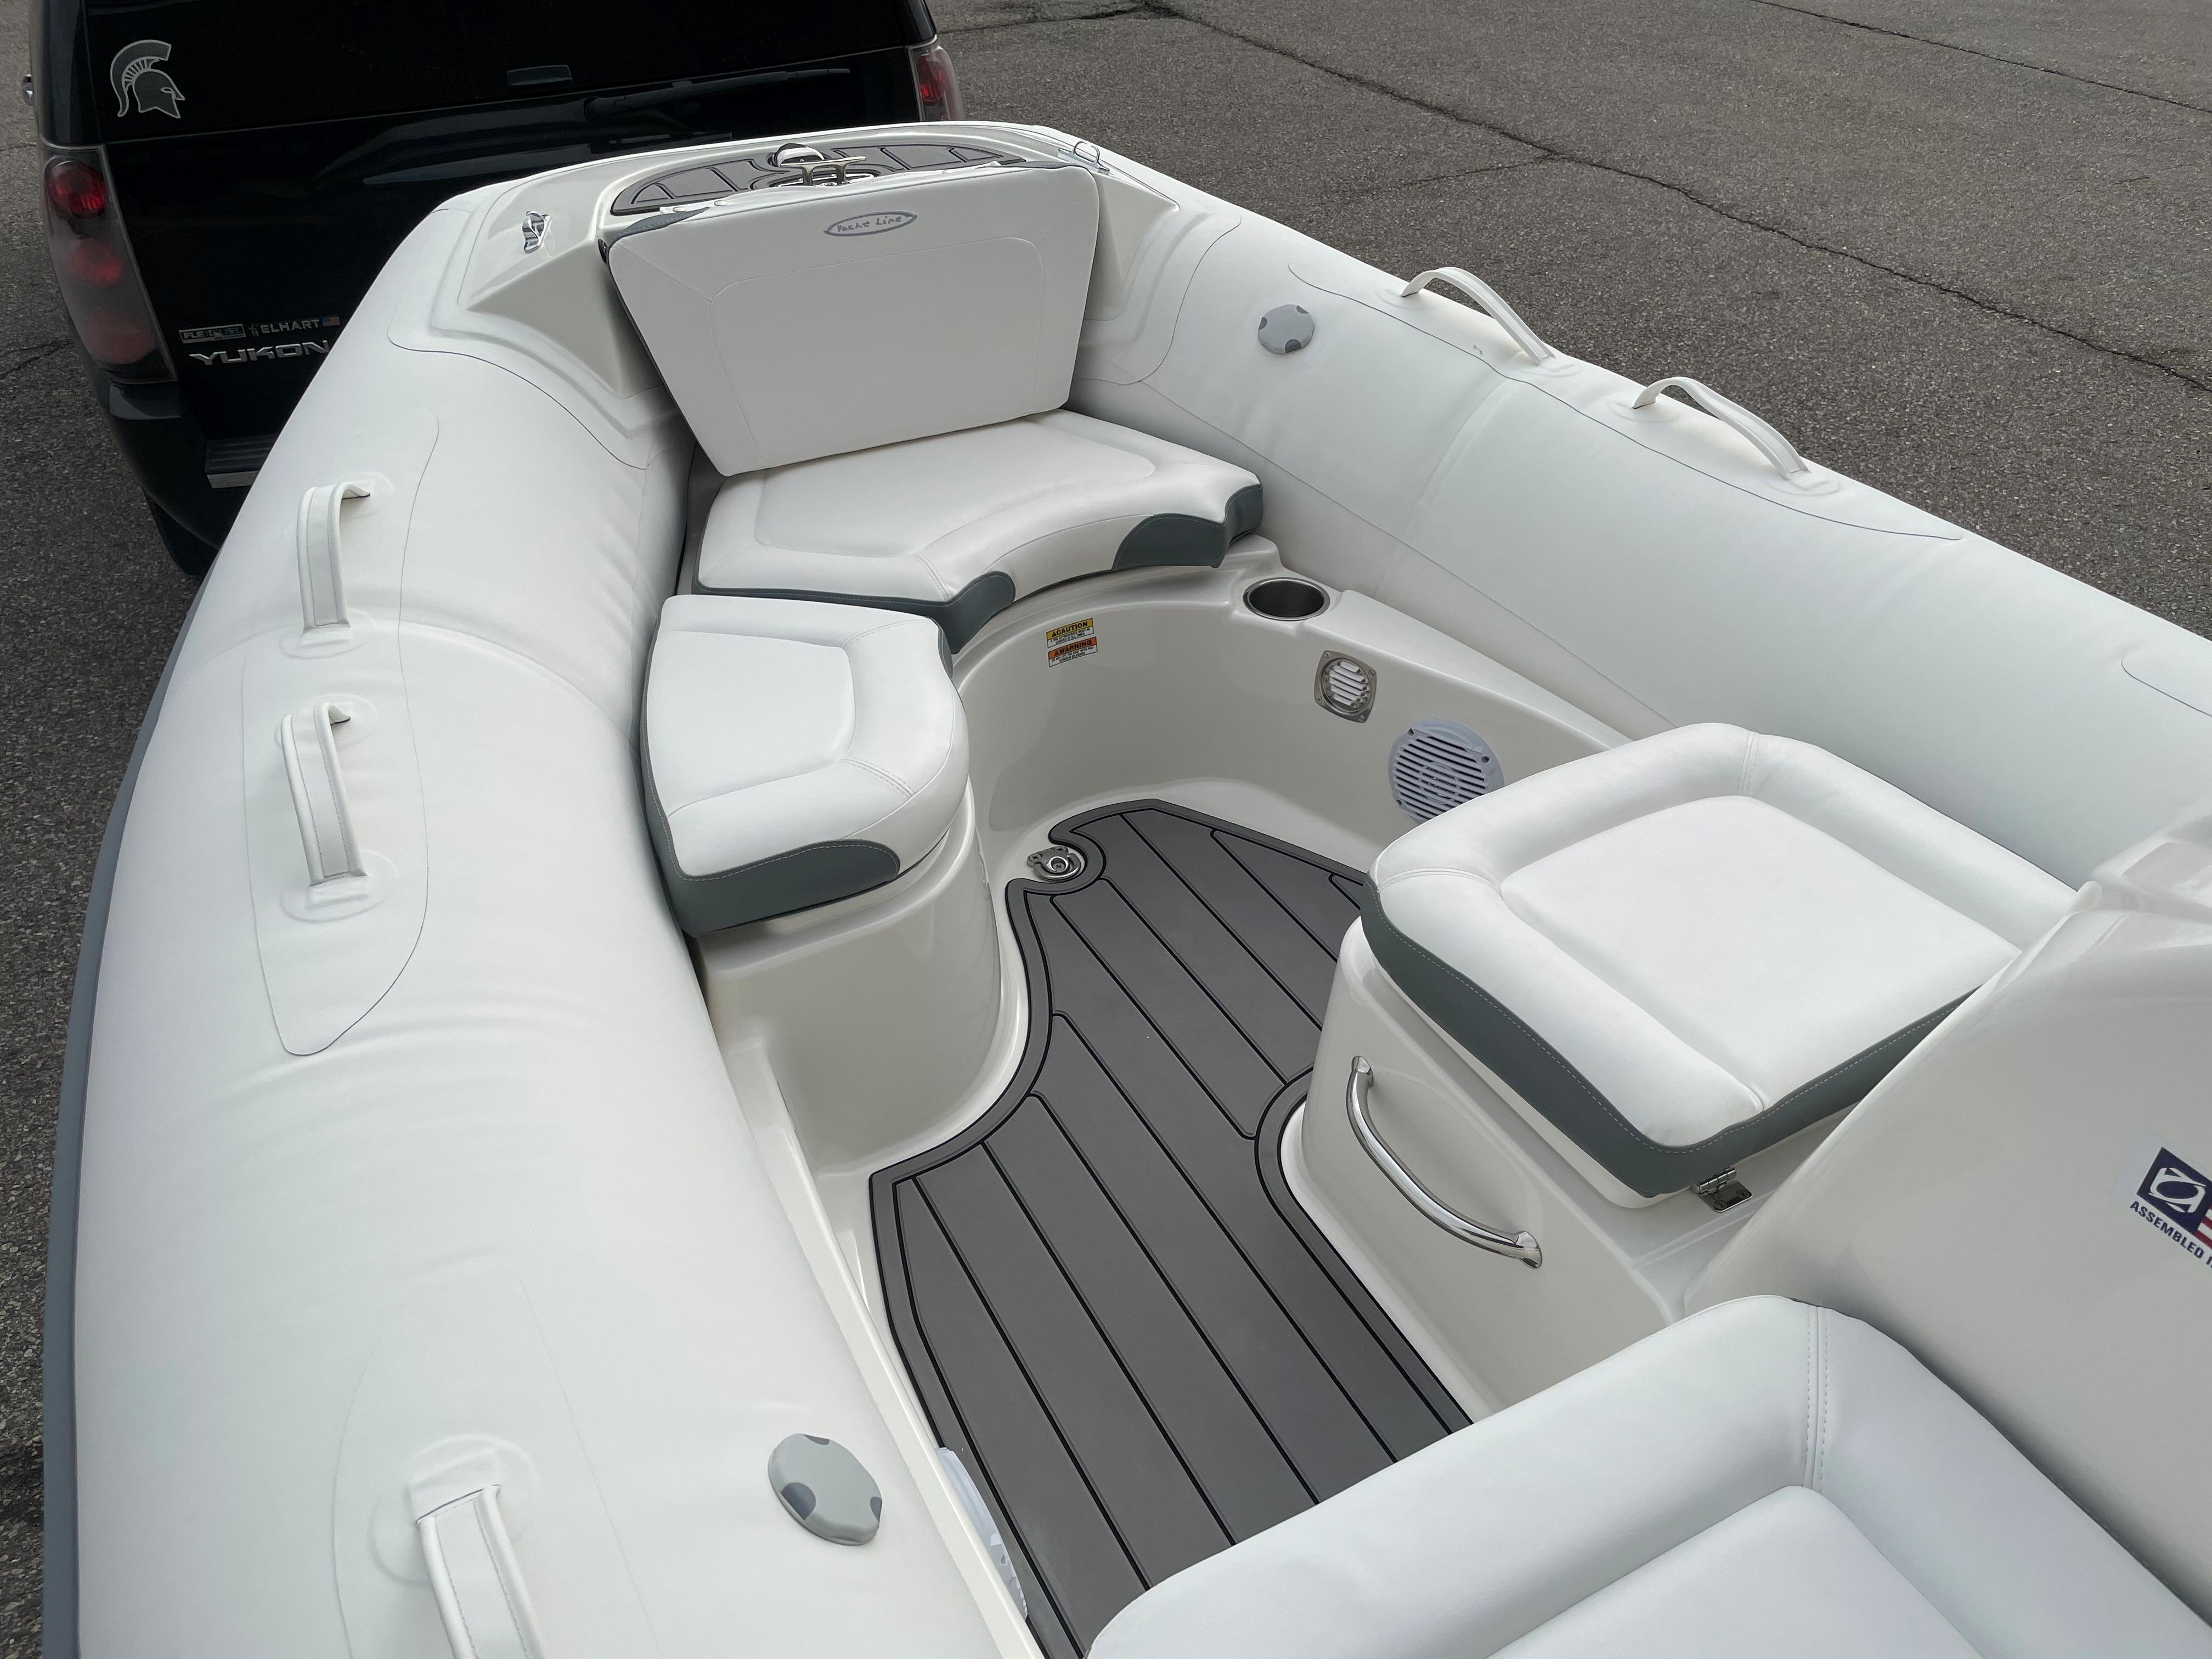 2022 Zodiac Yachtline 490 Deluxe NEO GL Edition 90hp On Order, Image 14